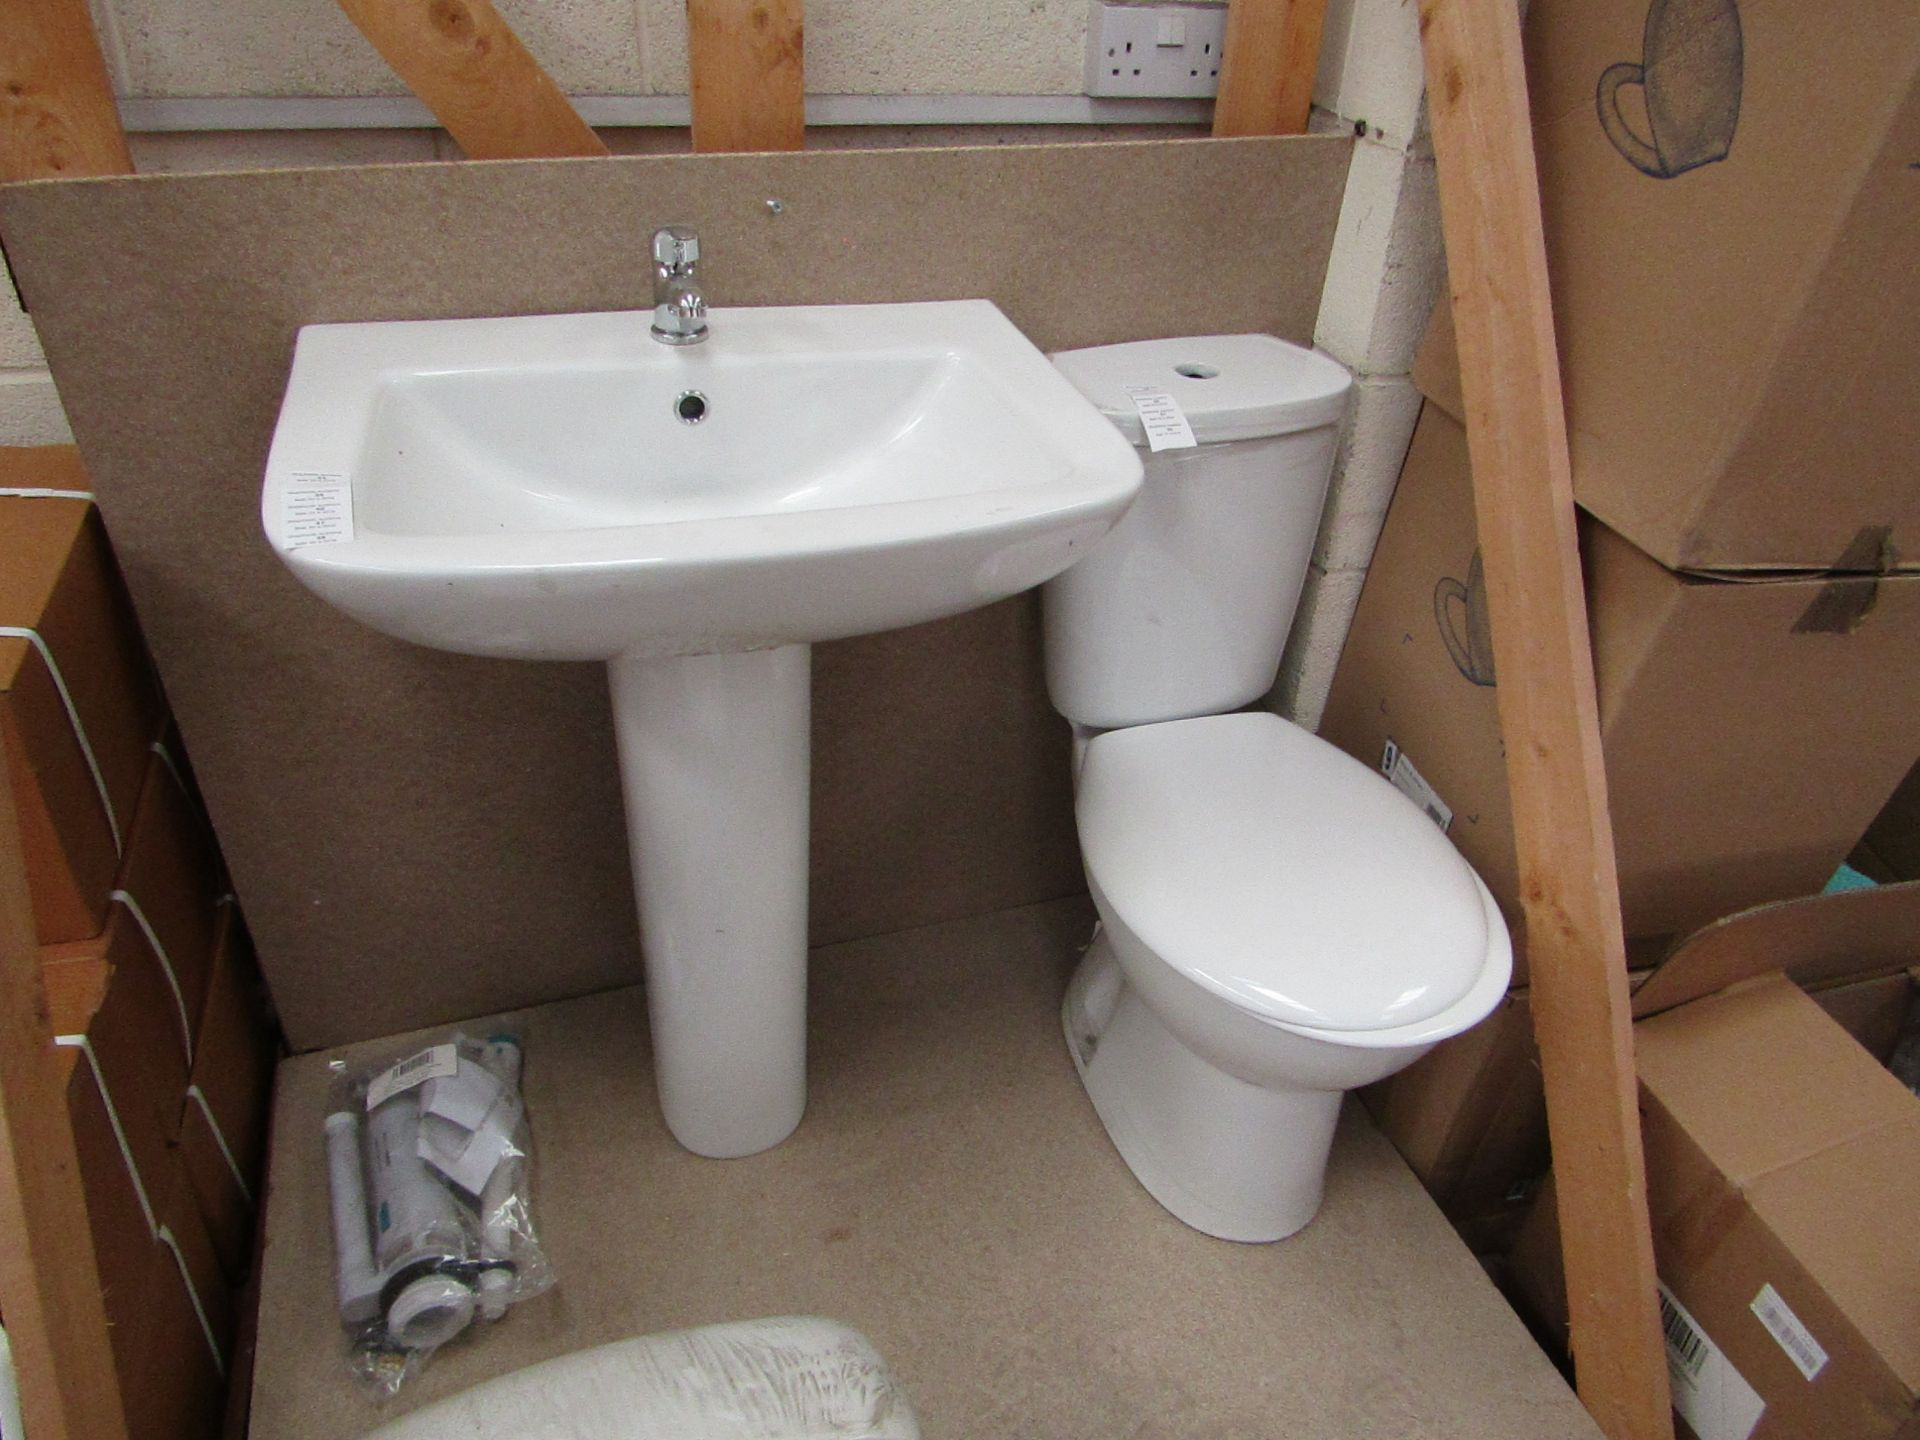 Lotto 52 - Unbranded Roca Cloakroom set that includes close coupled toilet with pan cistern, seat, flush kit, a